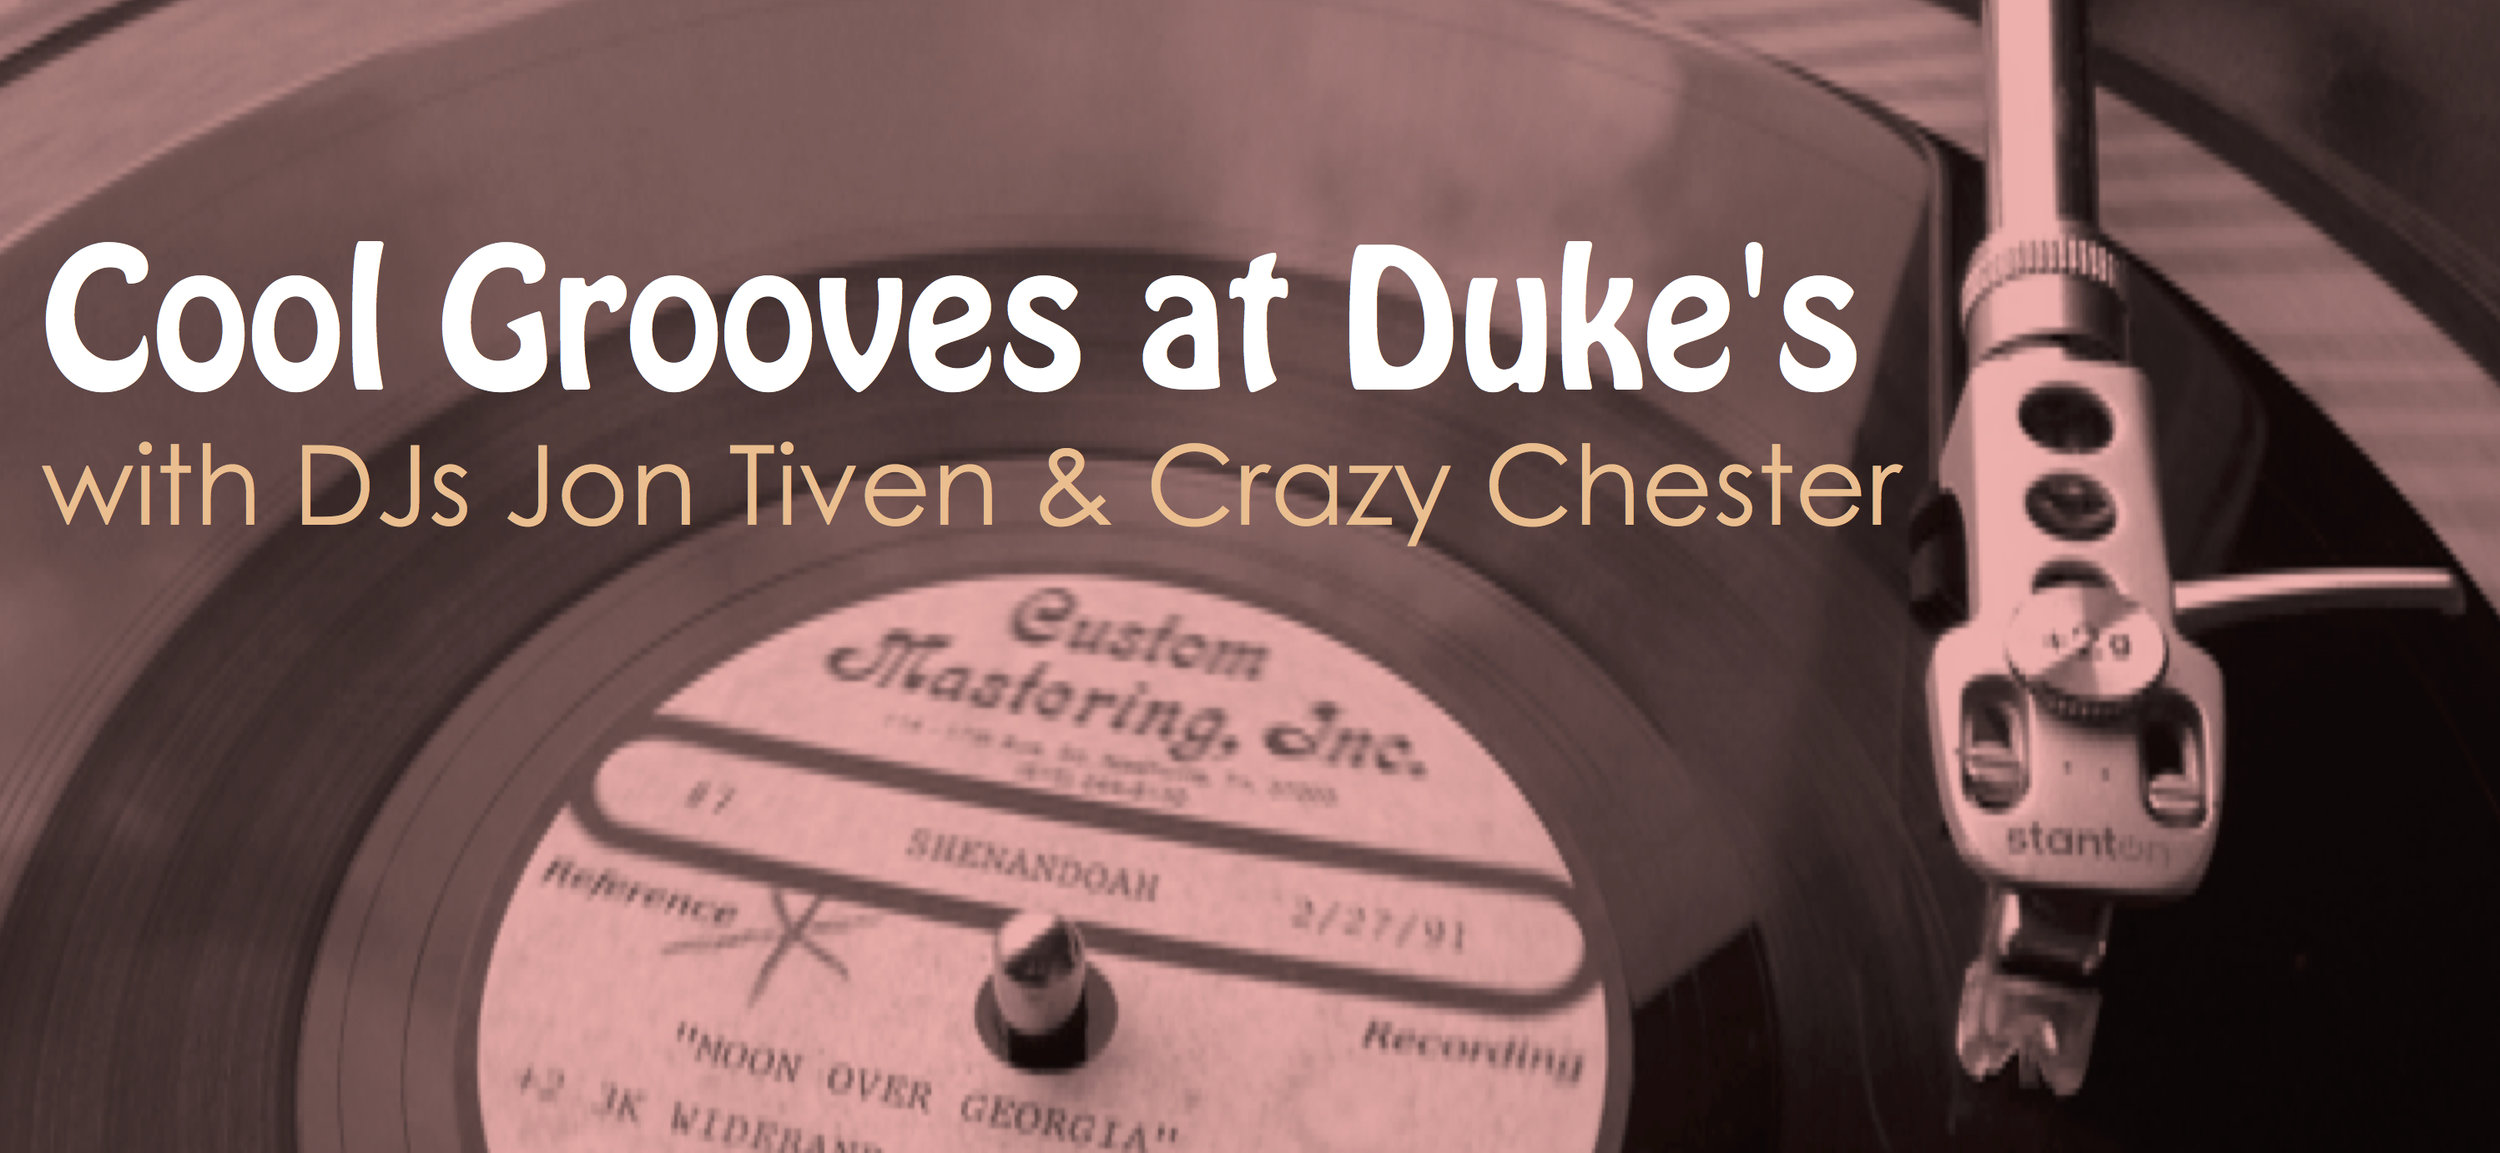 cool-grooves-at-dukes-facebook